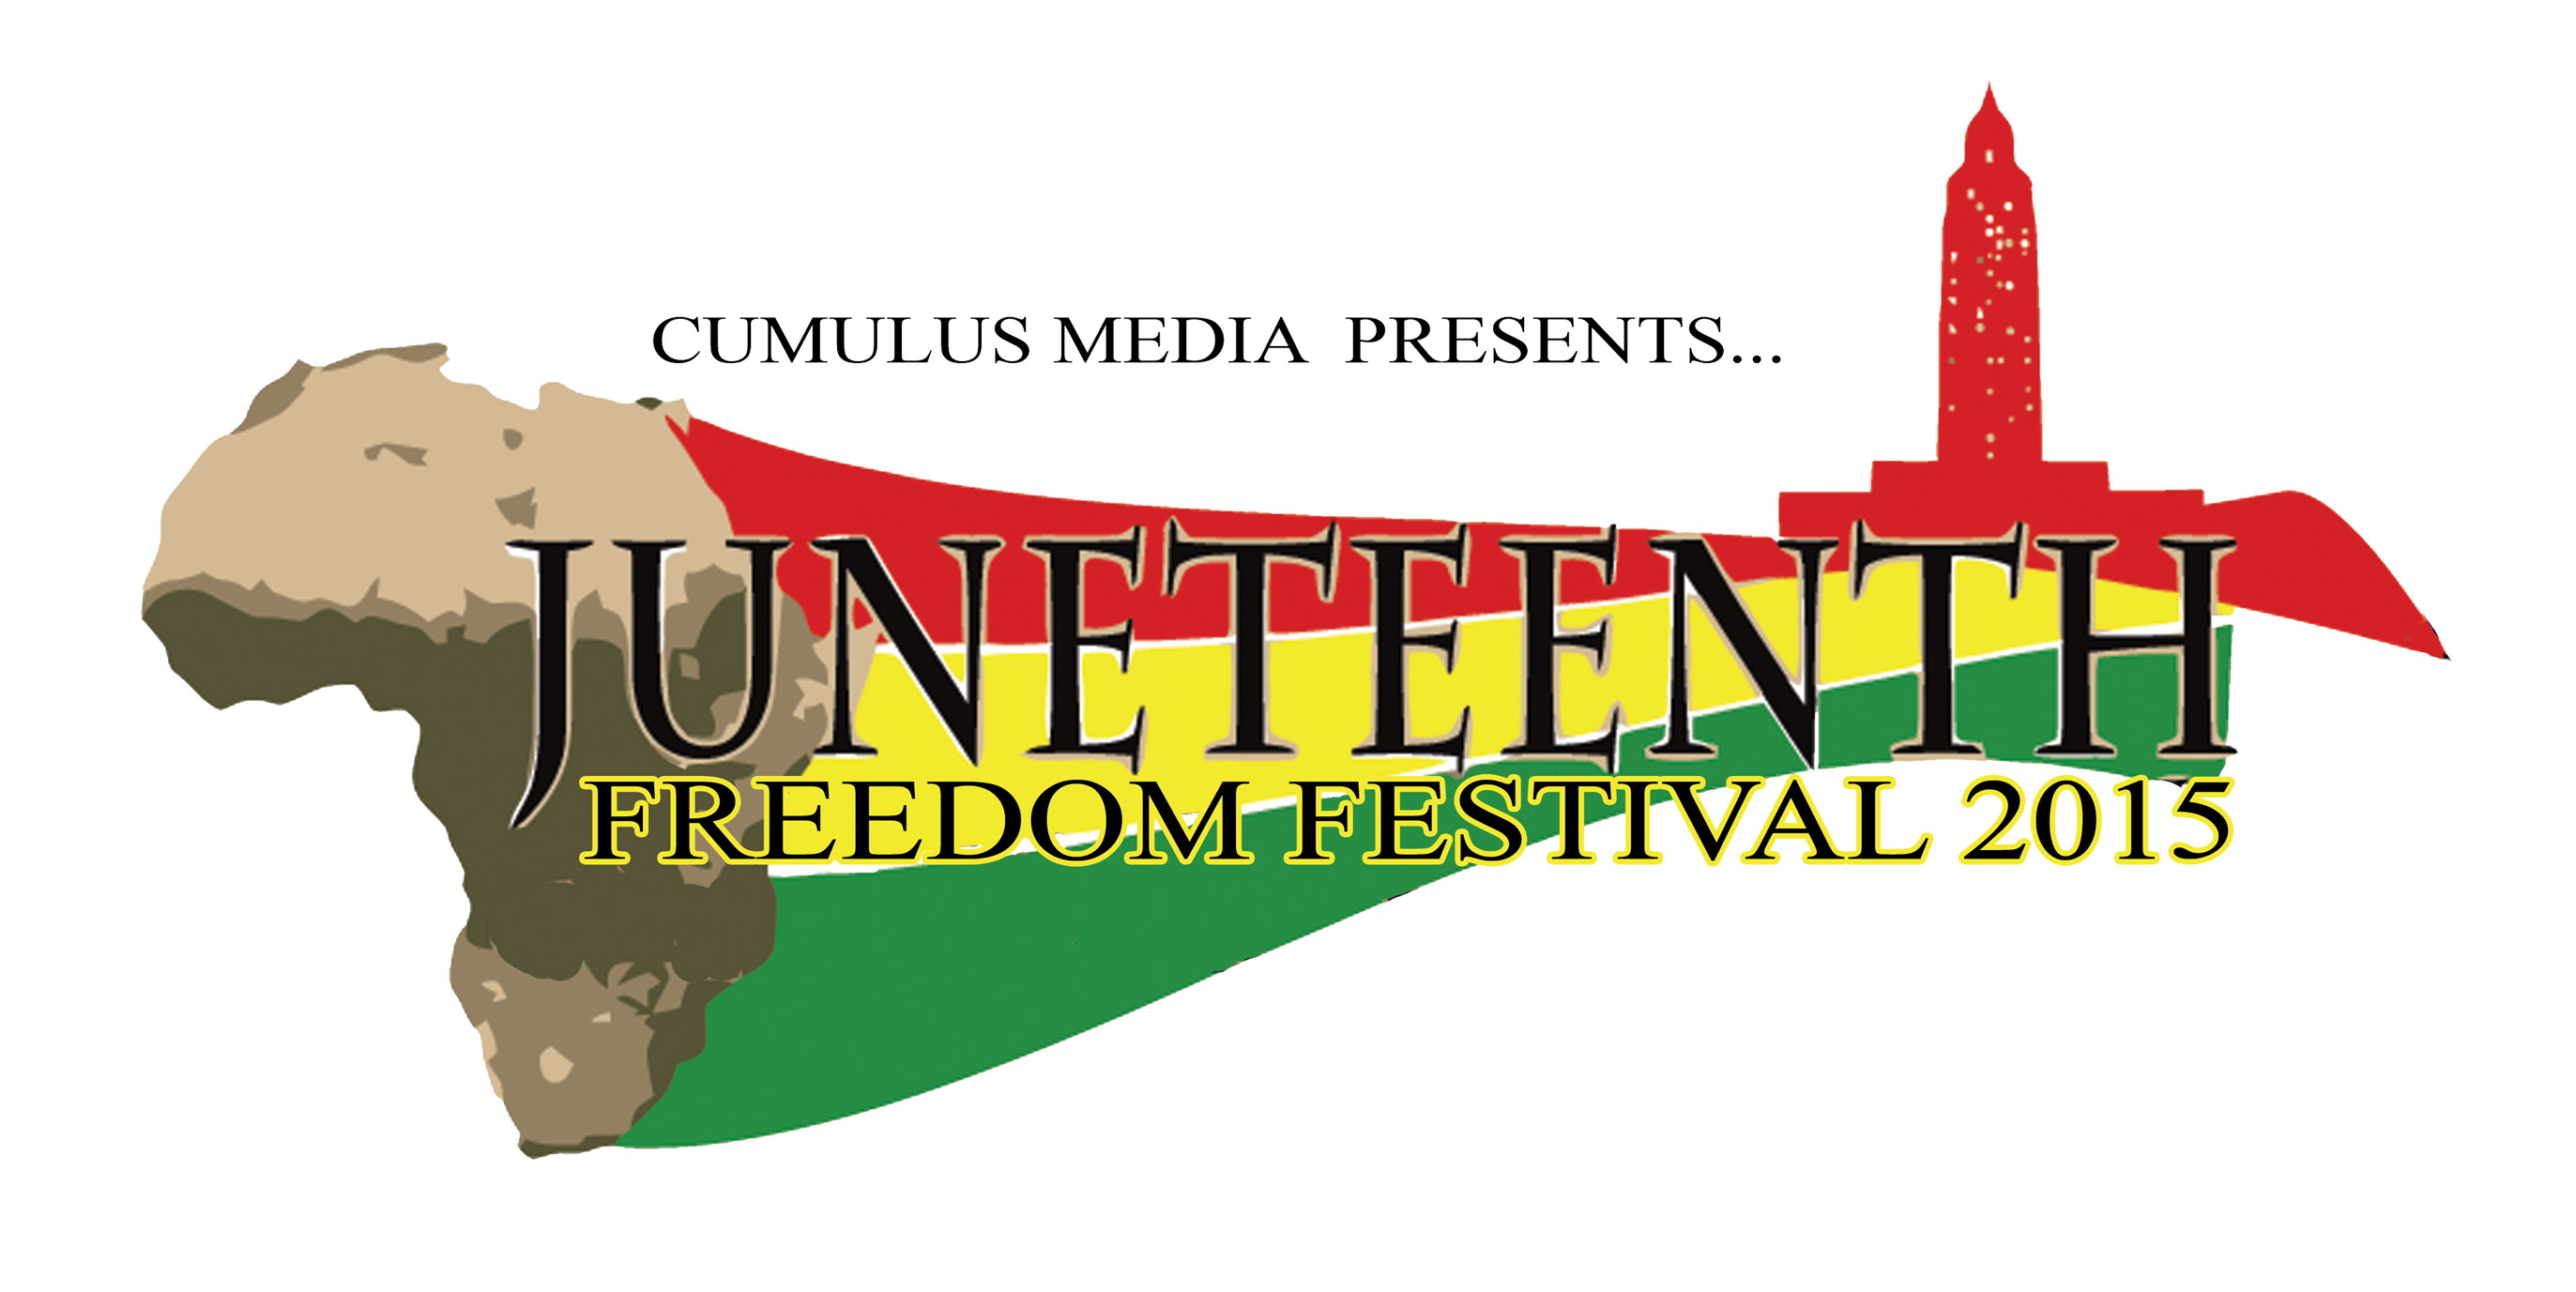 Hands And Heart With Freedom Juneteenth Message, Vector Illustration  Royalty Free Cliparts, Vectors, And Stock Illustration. Image 77966425.